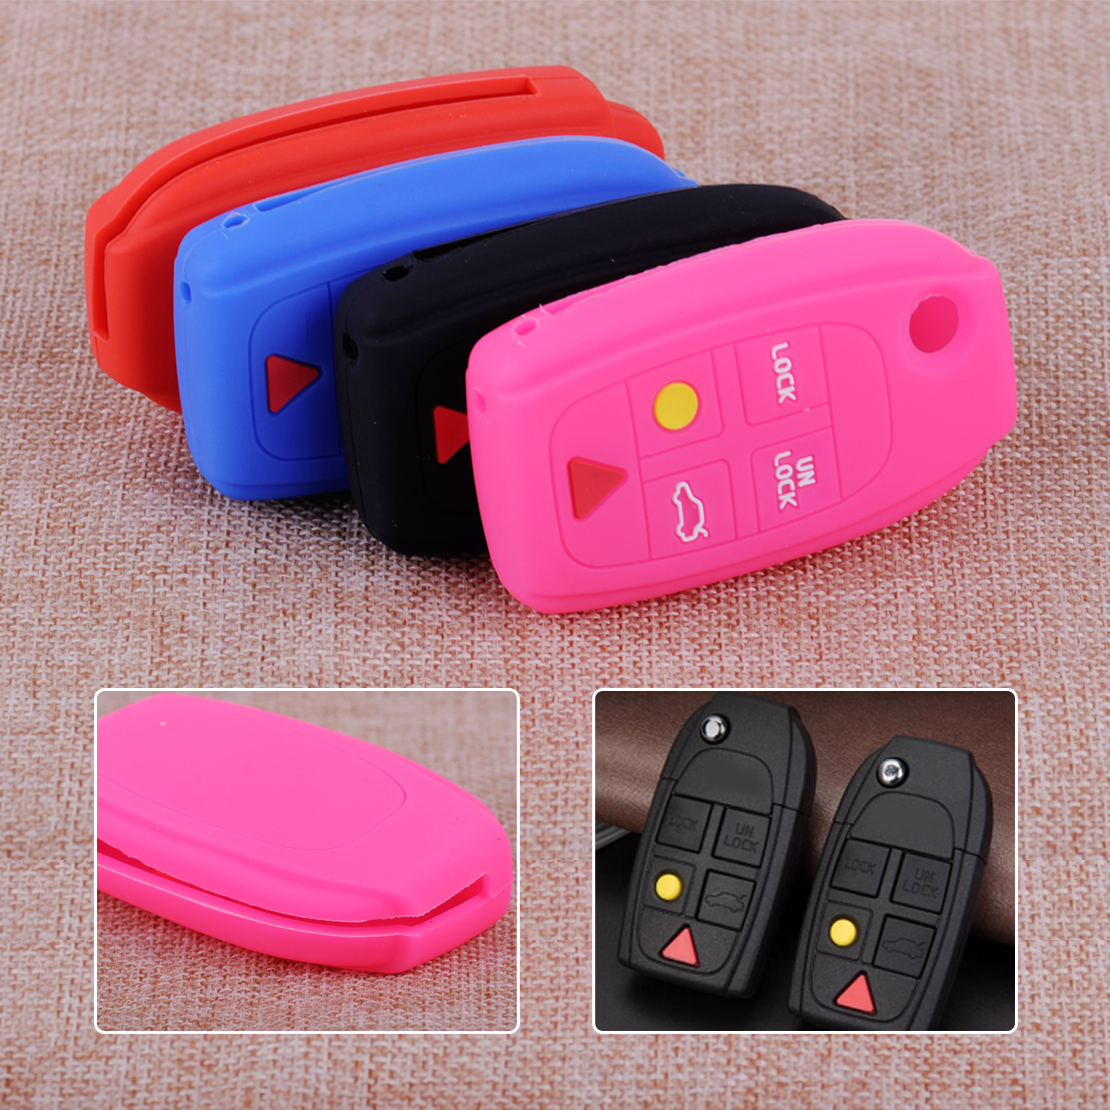 CITALL 5 Buttons Silicone Car Remote Key Cover Shell Case Fob Fit For Volvo S60 S80 V70 XC70 XC90 C30 C70 V50 S40